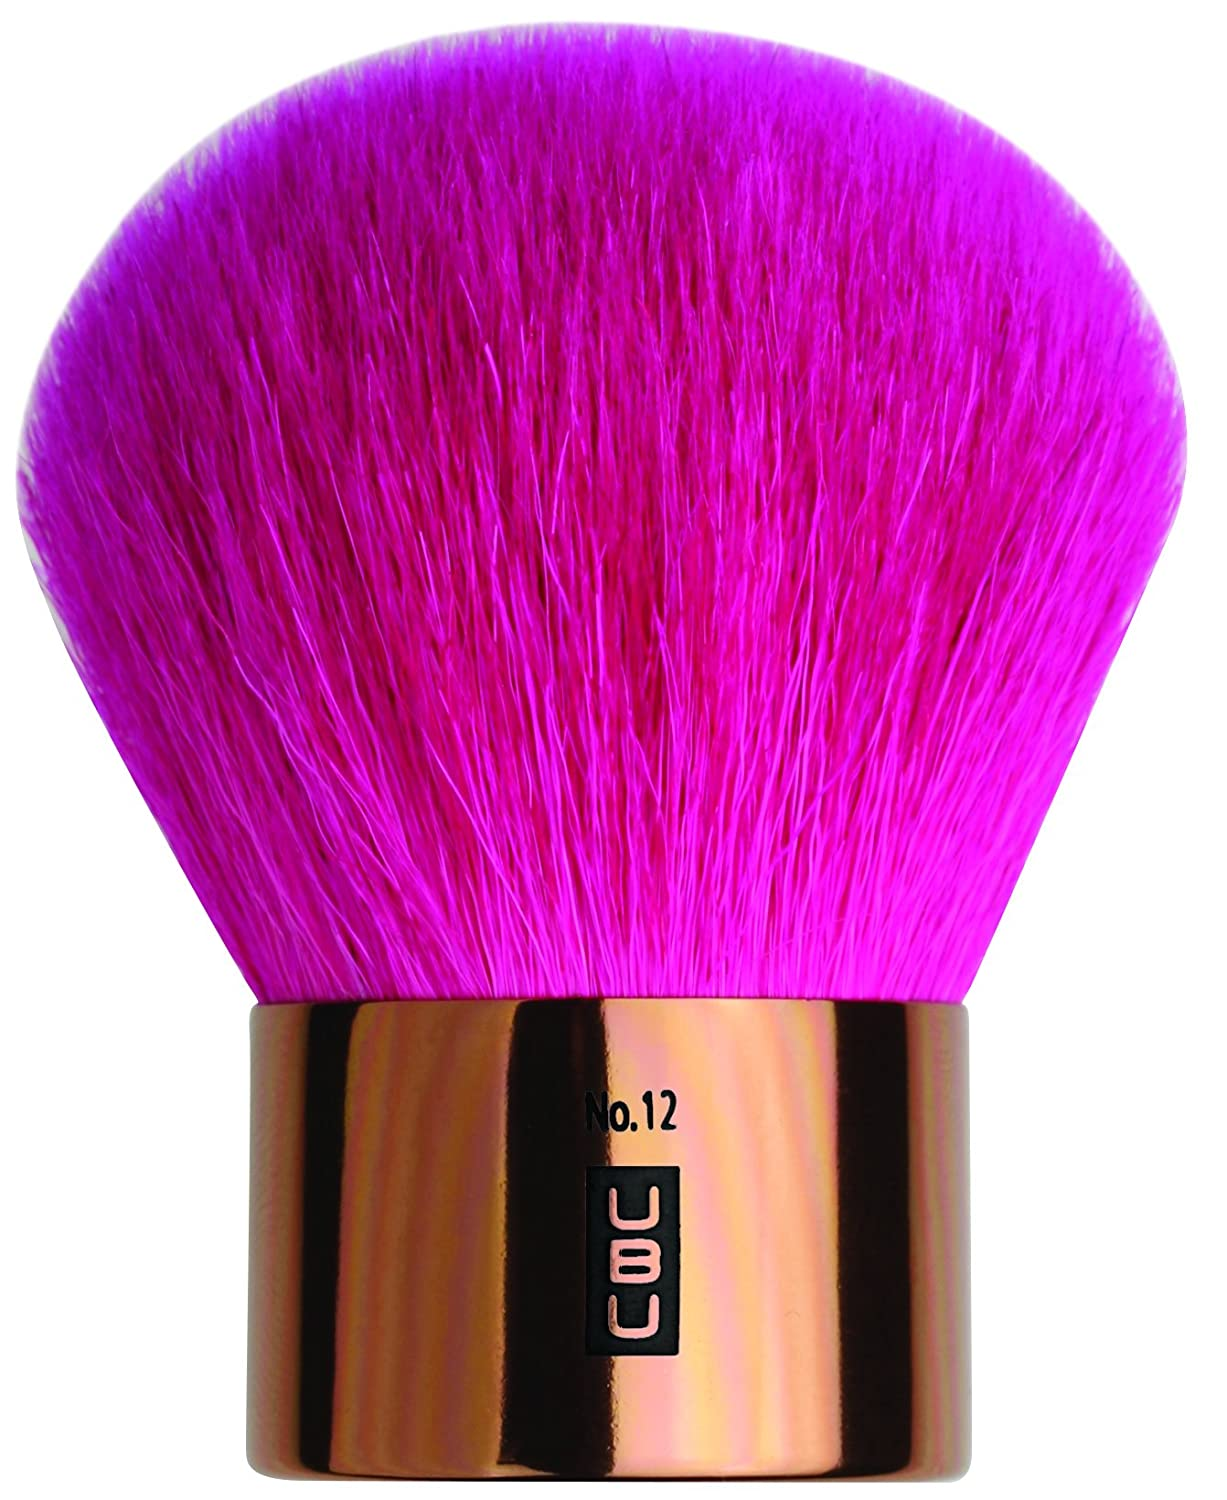 UBU Kabuki Crush Angled Blusher Brush 1 Count 19-5026